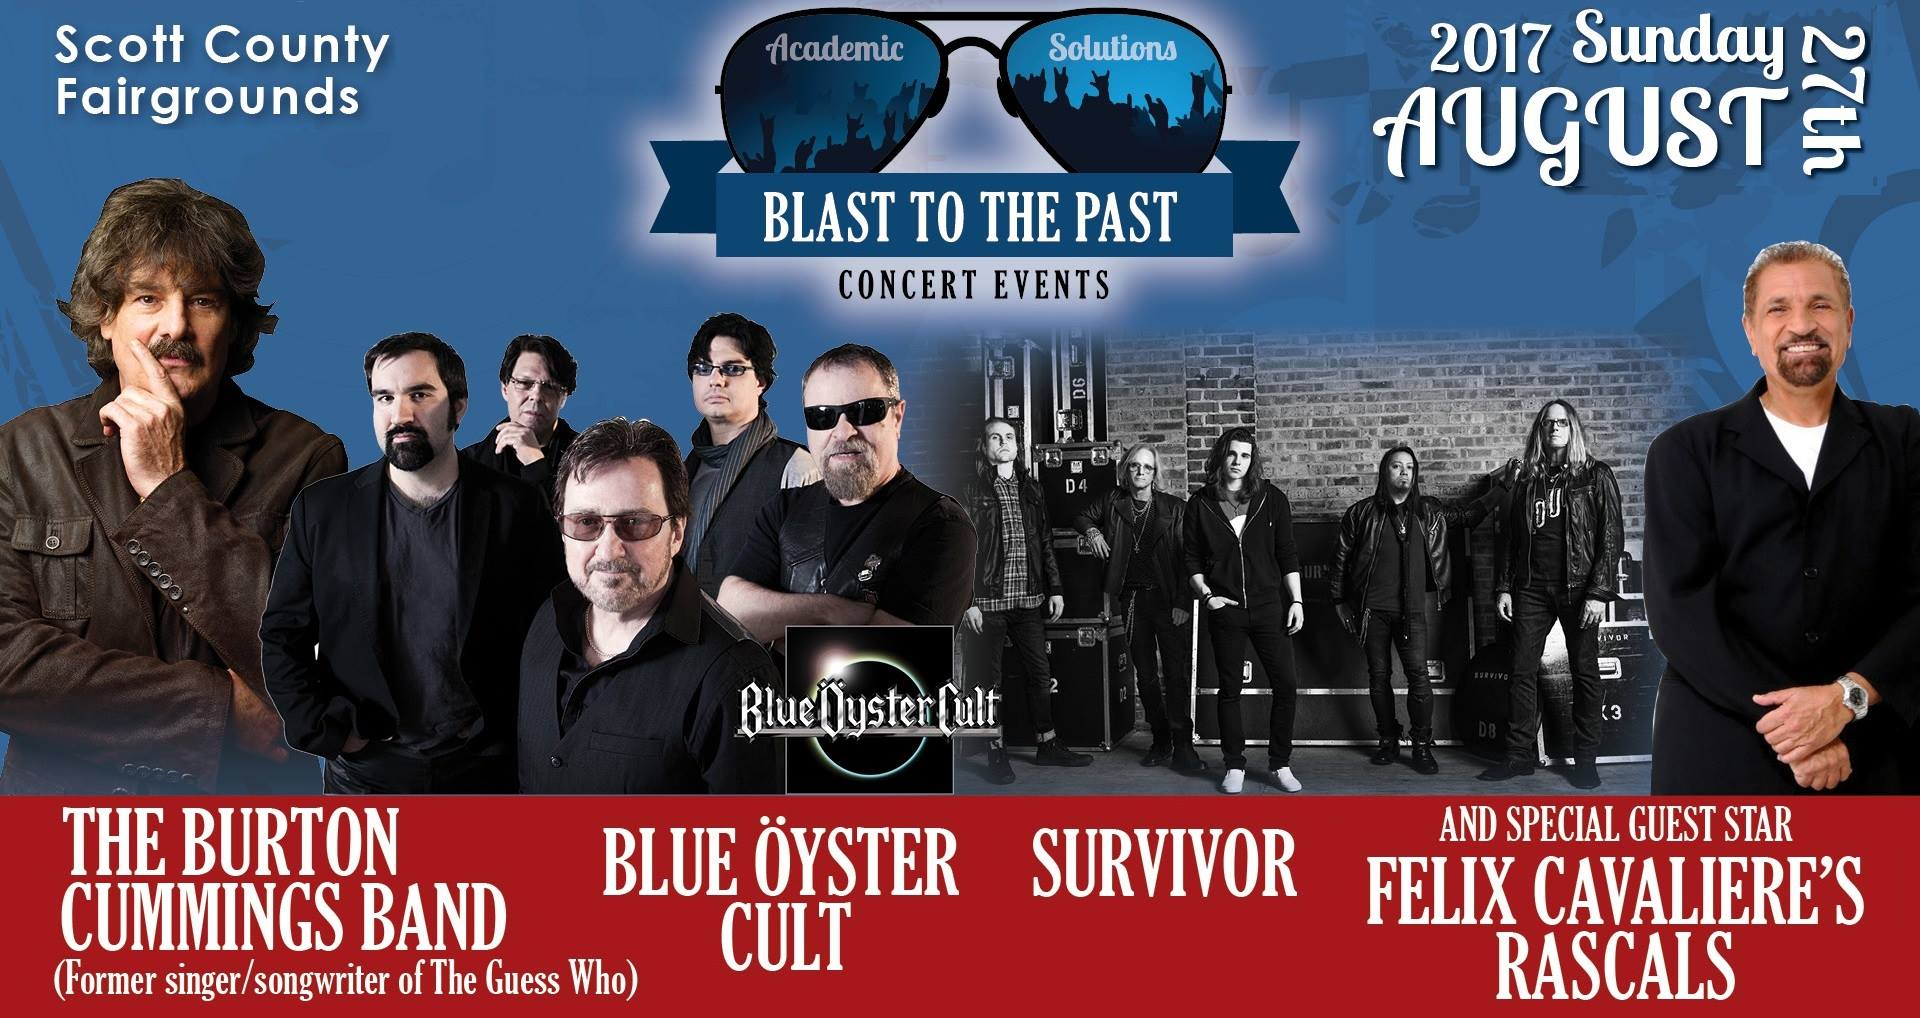 Blast to the Past Concert